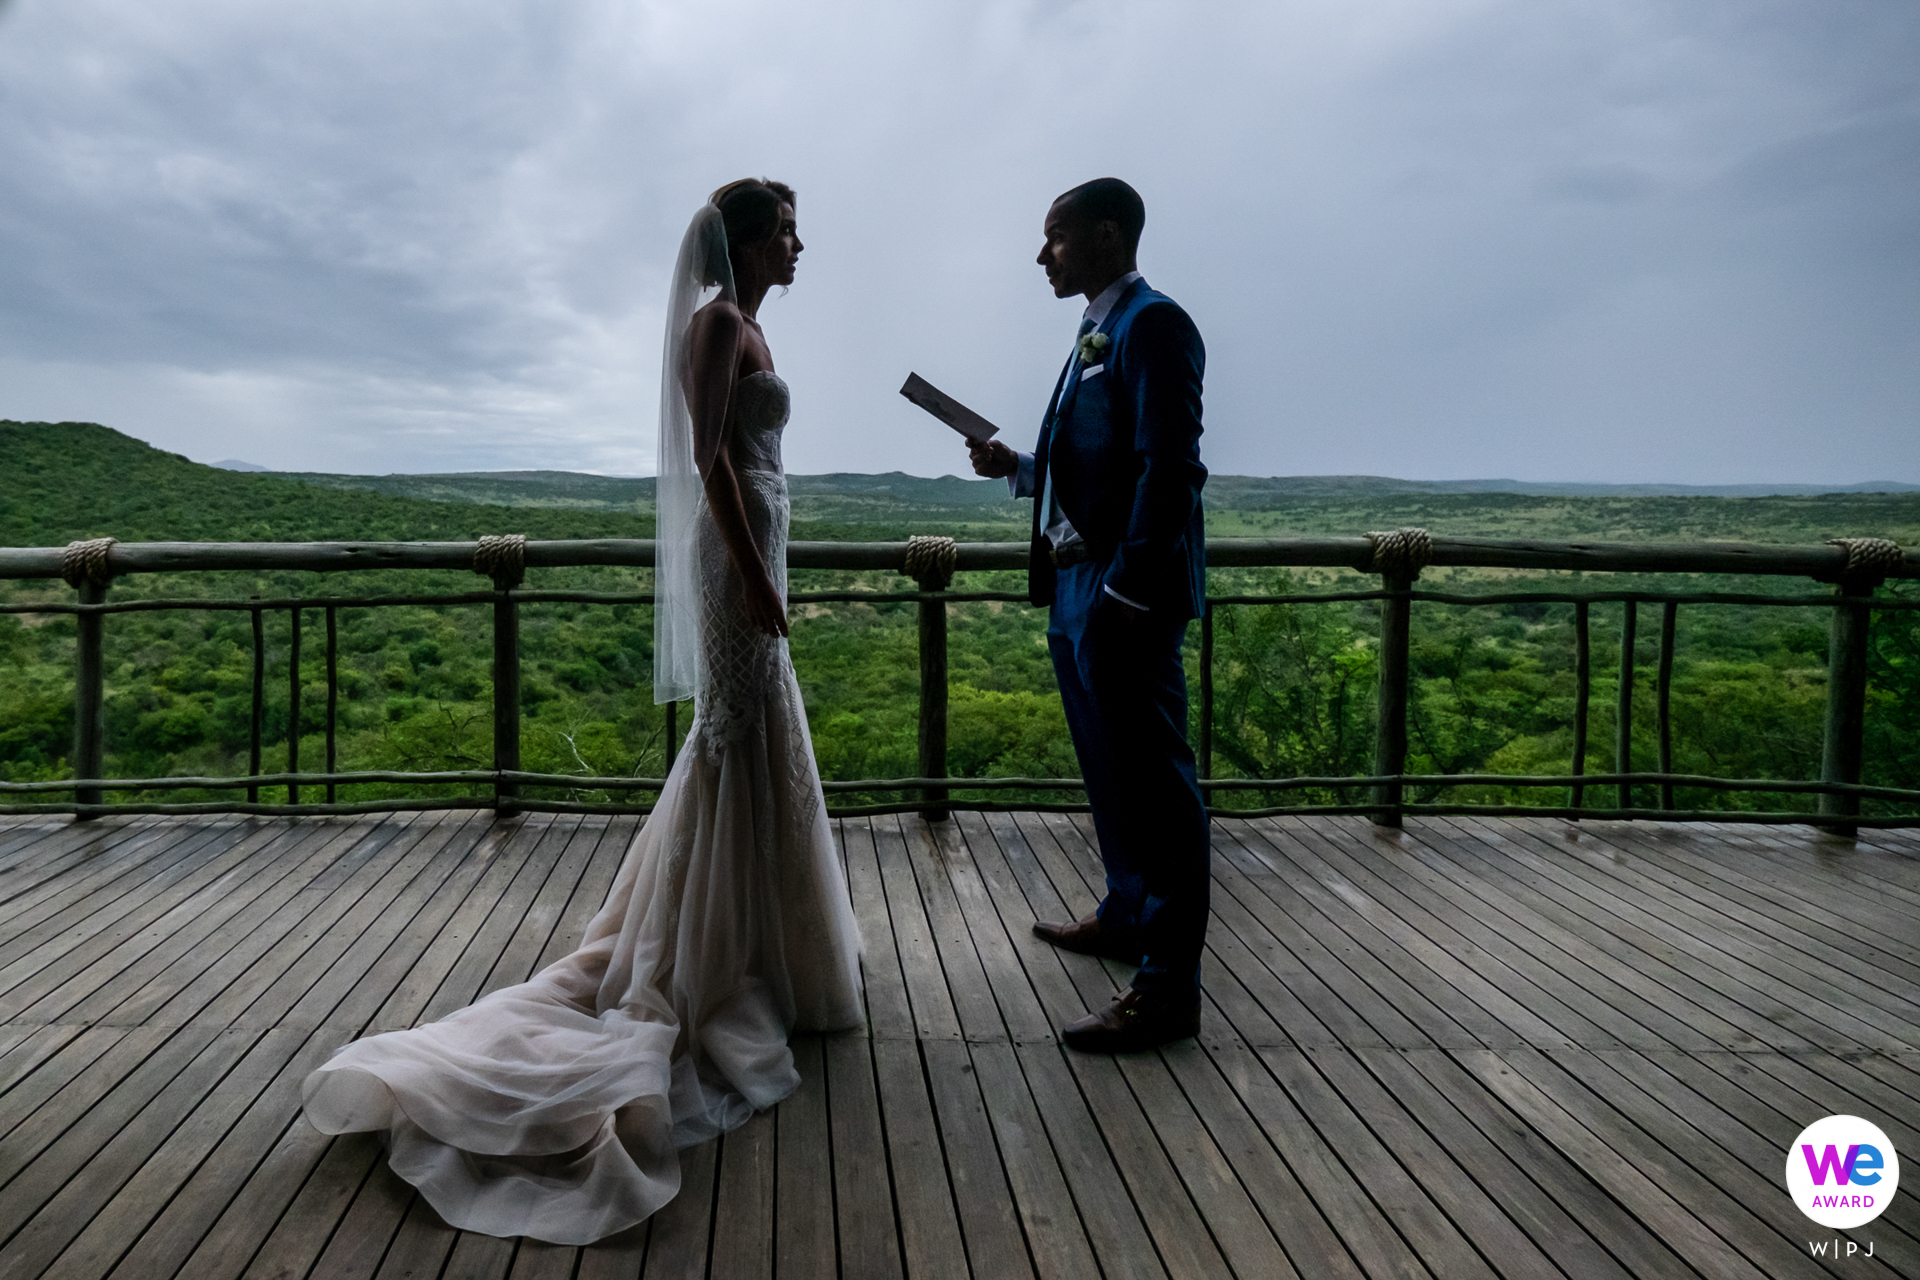 Nambiti Hills, KwaZulu Natal Midlands, South Africa Elopement Image - The couple exchanges private vows during their first look at their African elopement wedding with the vast African grasslands as the backdrop.